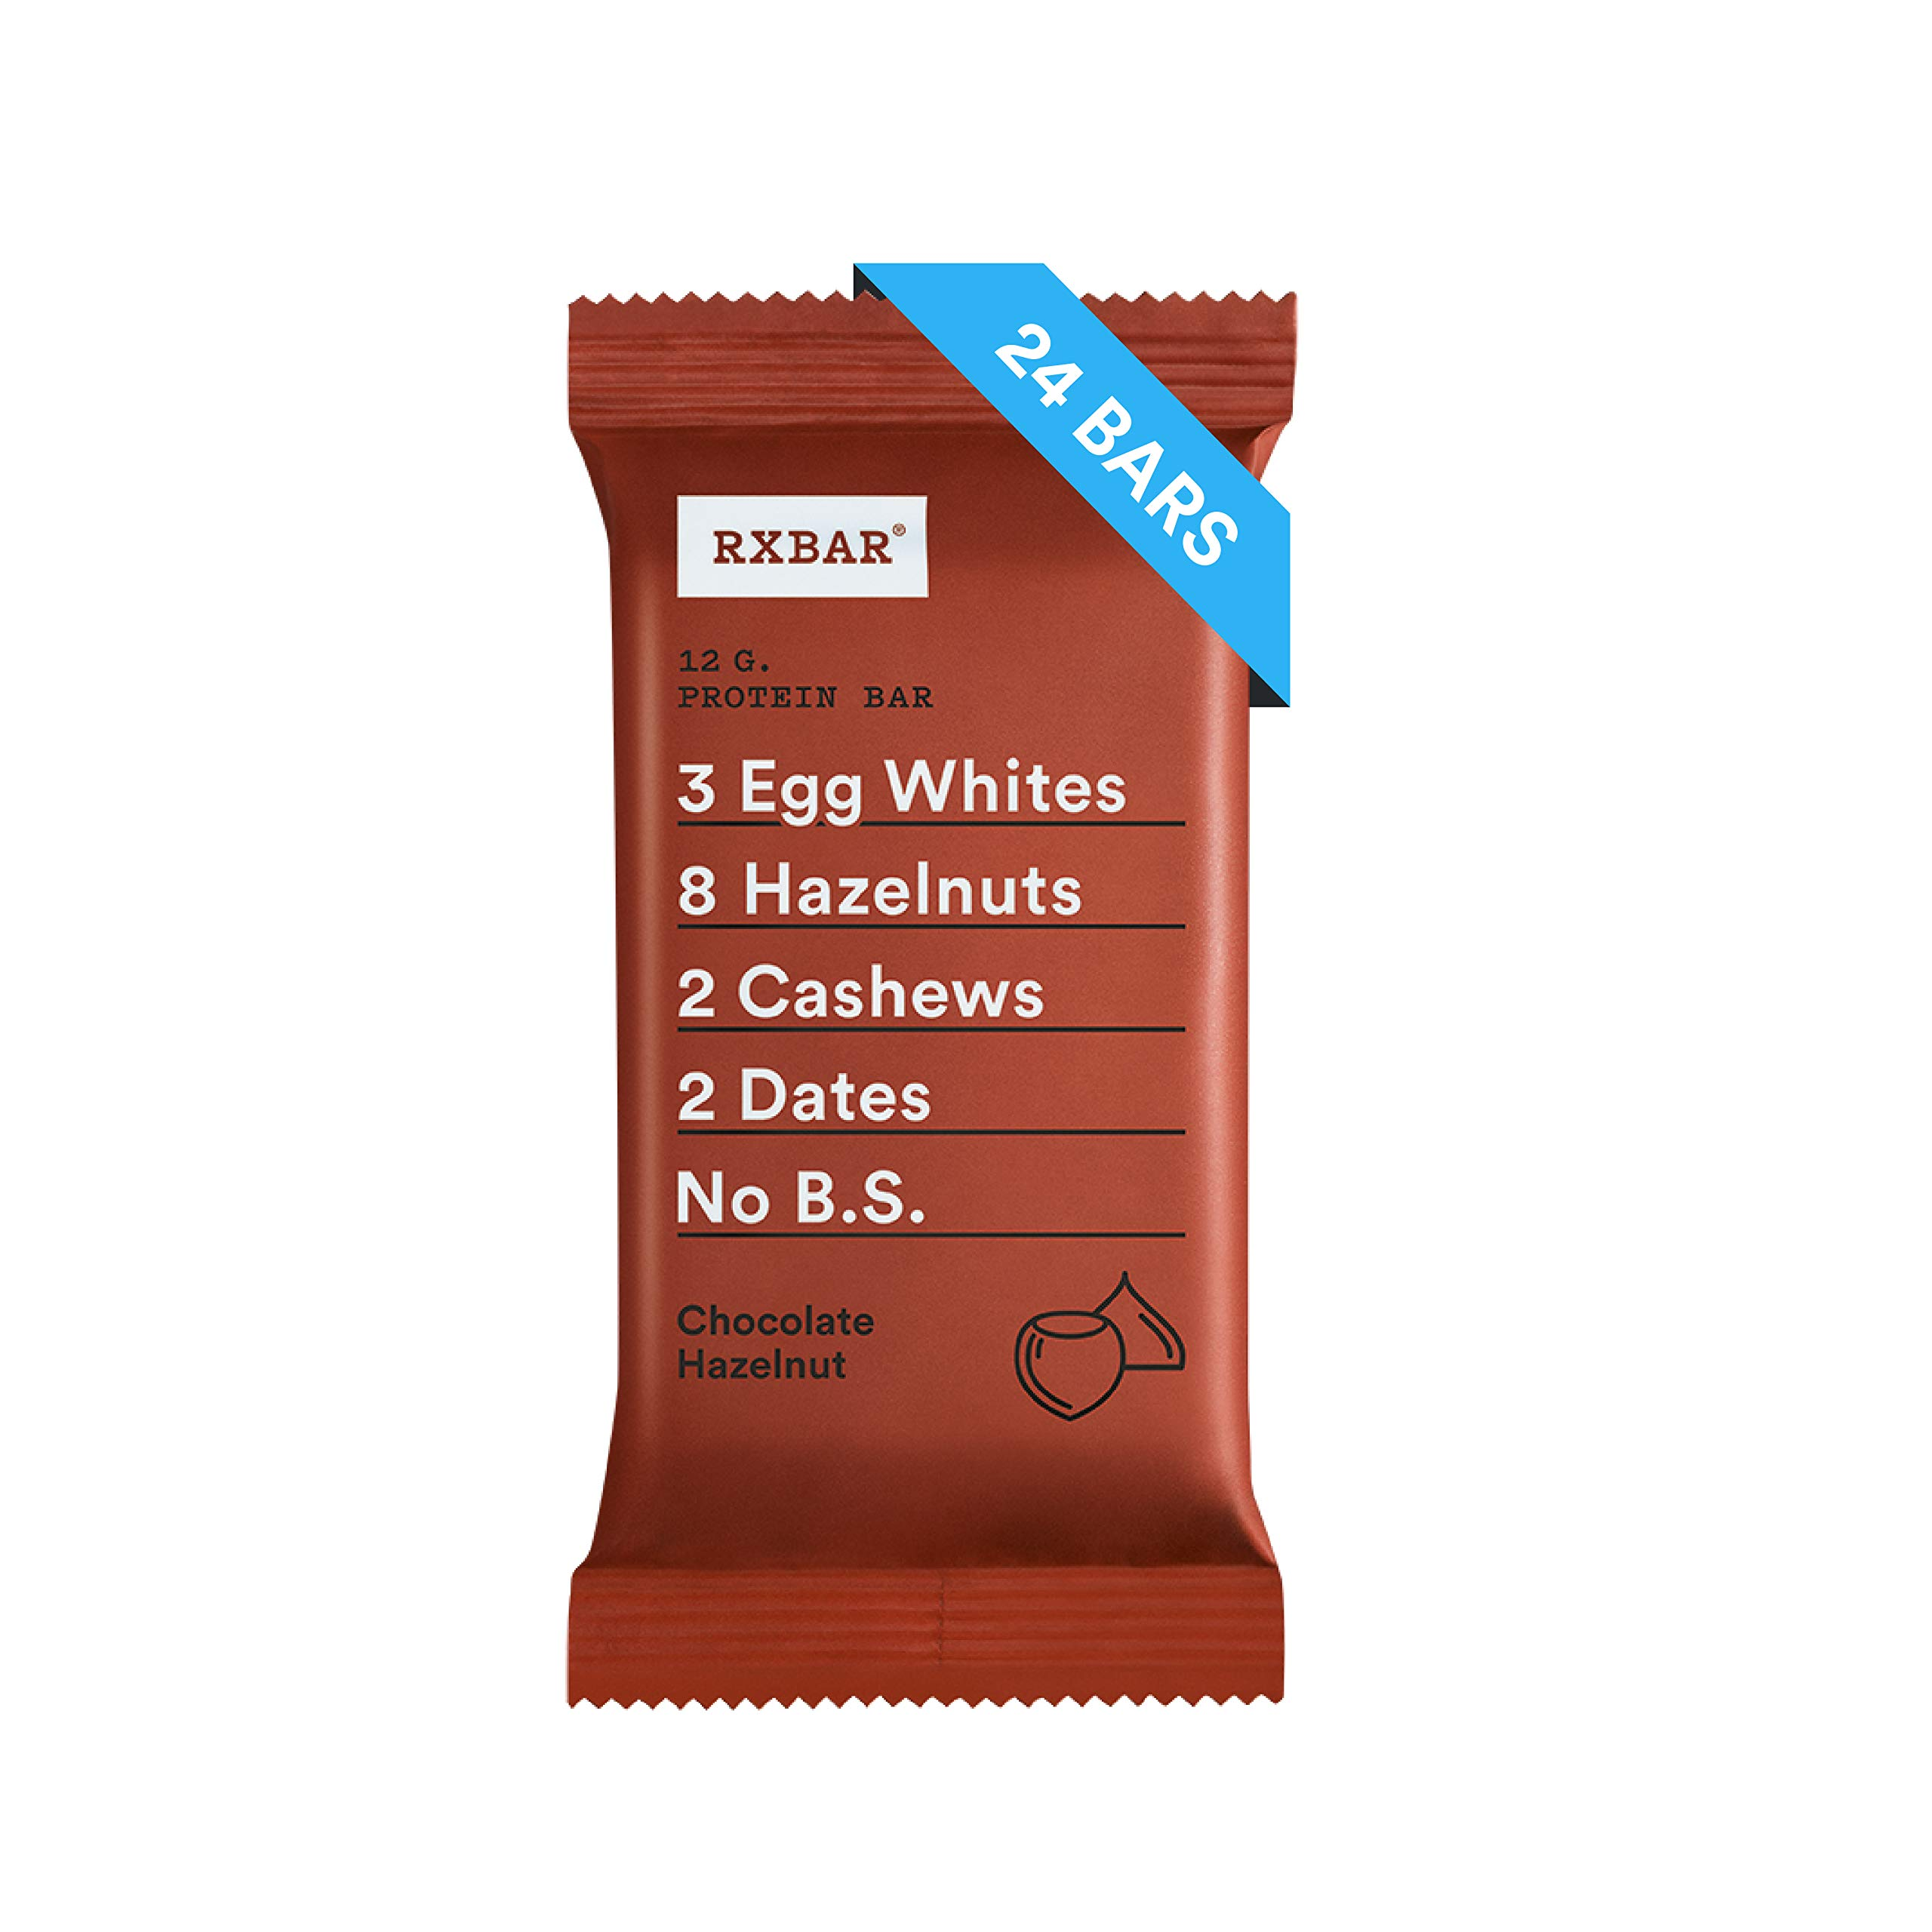 RXBAR Real Food Protein Bar, Chococolate Hazelnut, Gluten Free, 1.83oz Bars, 24 Count